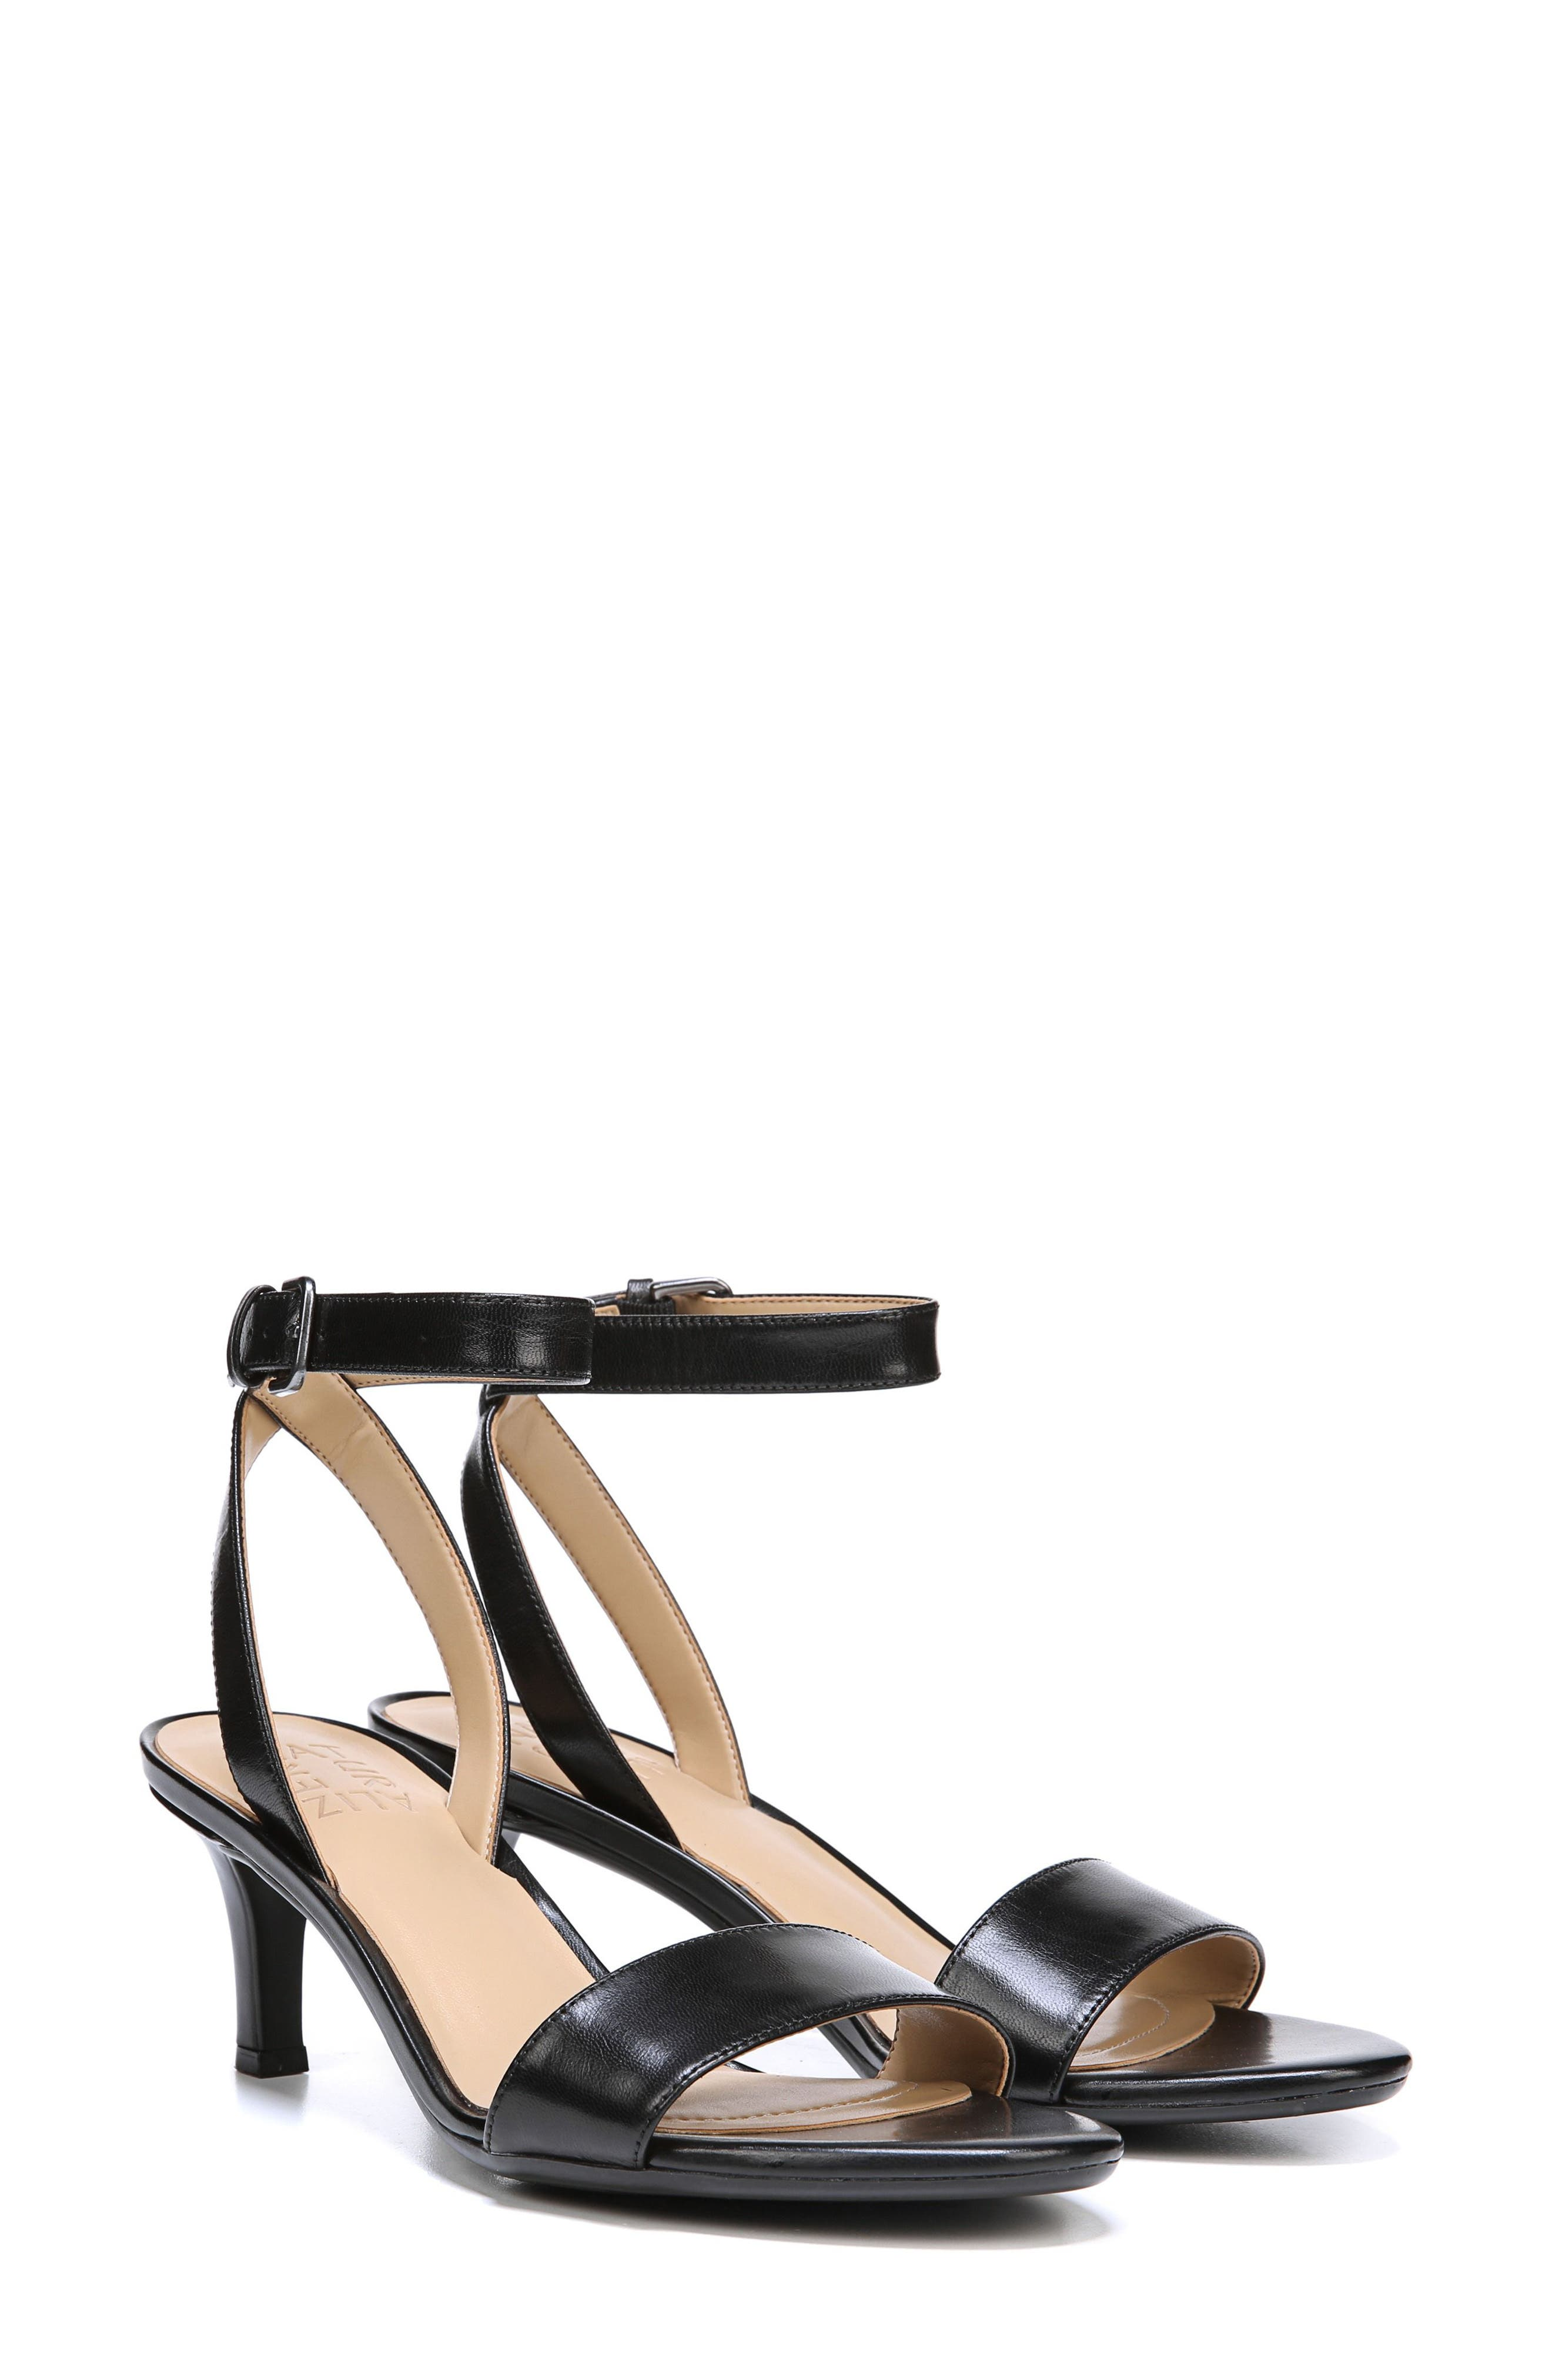 Tinda Sandal,                             Alternate thumbnail 7, color,                             BLACK LEATHER